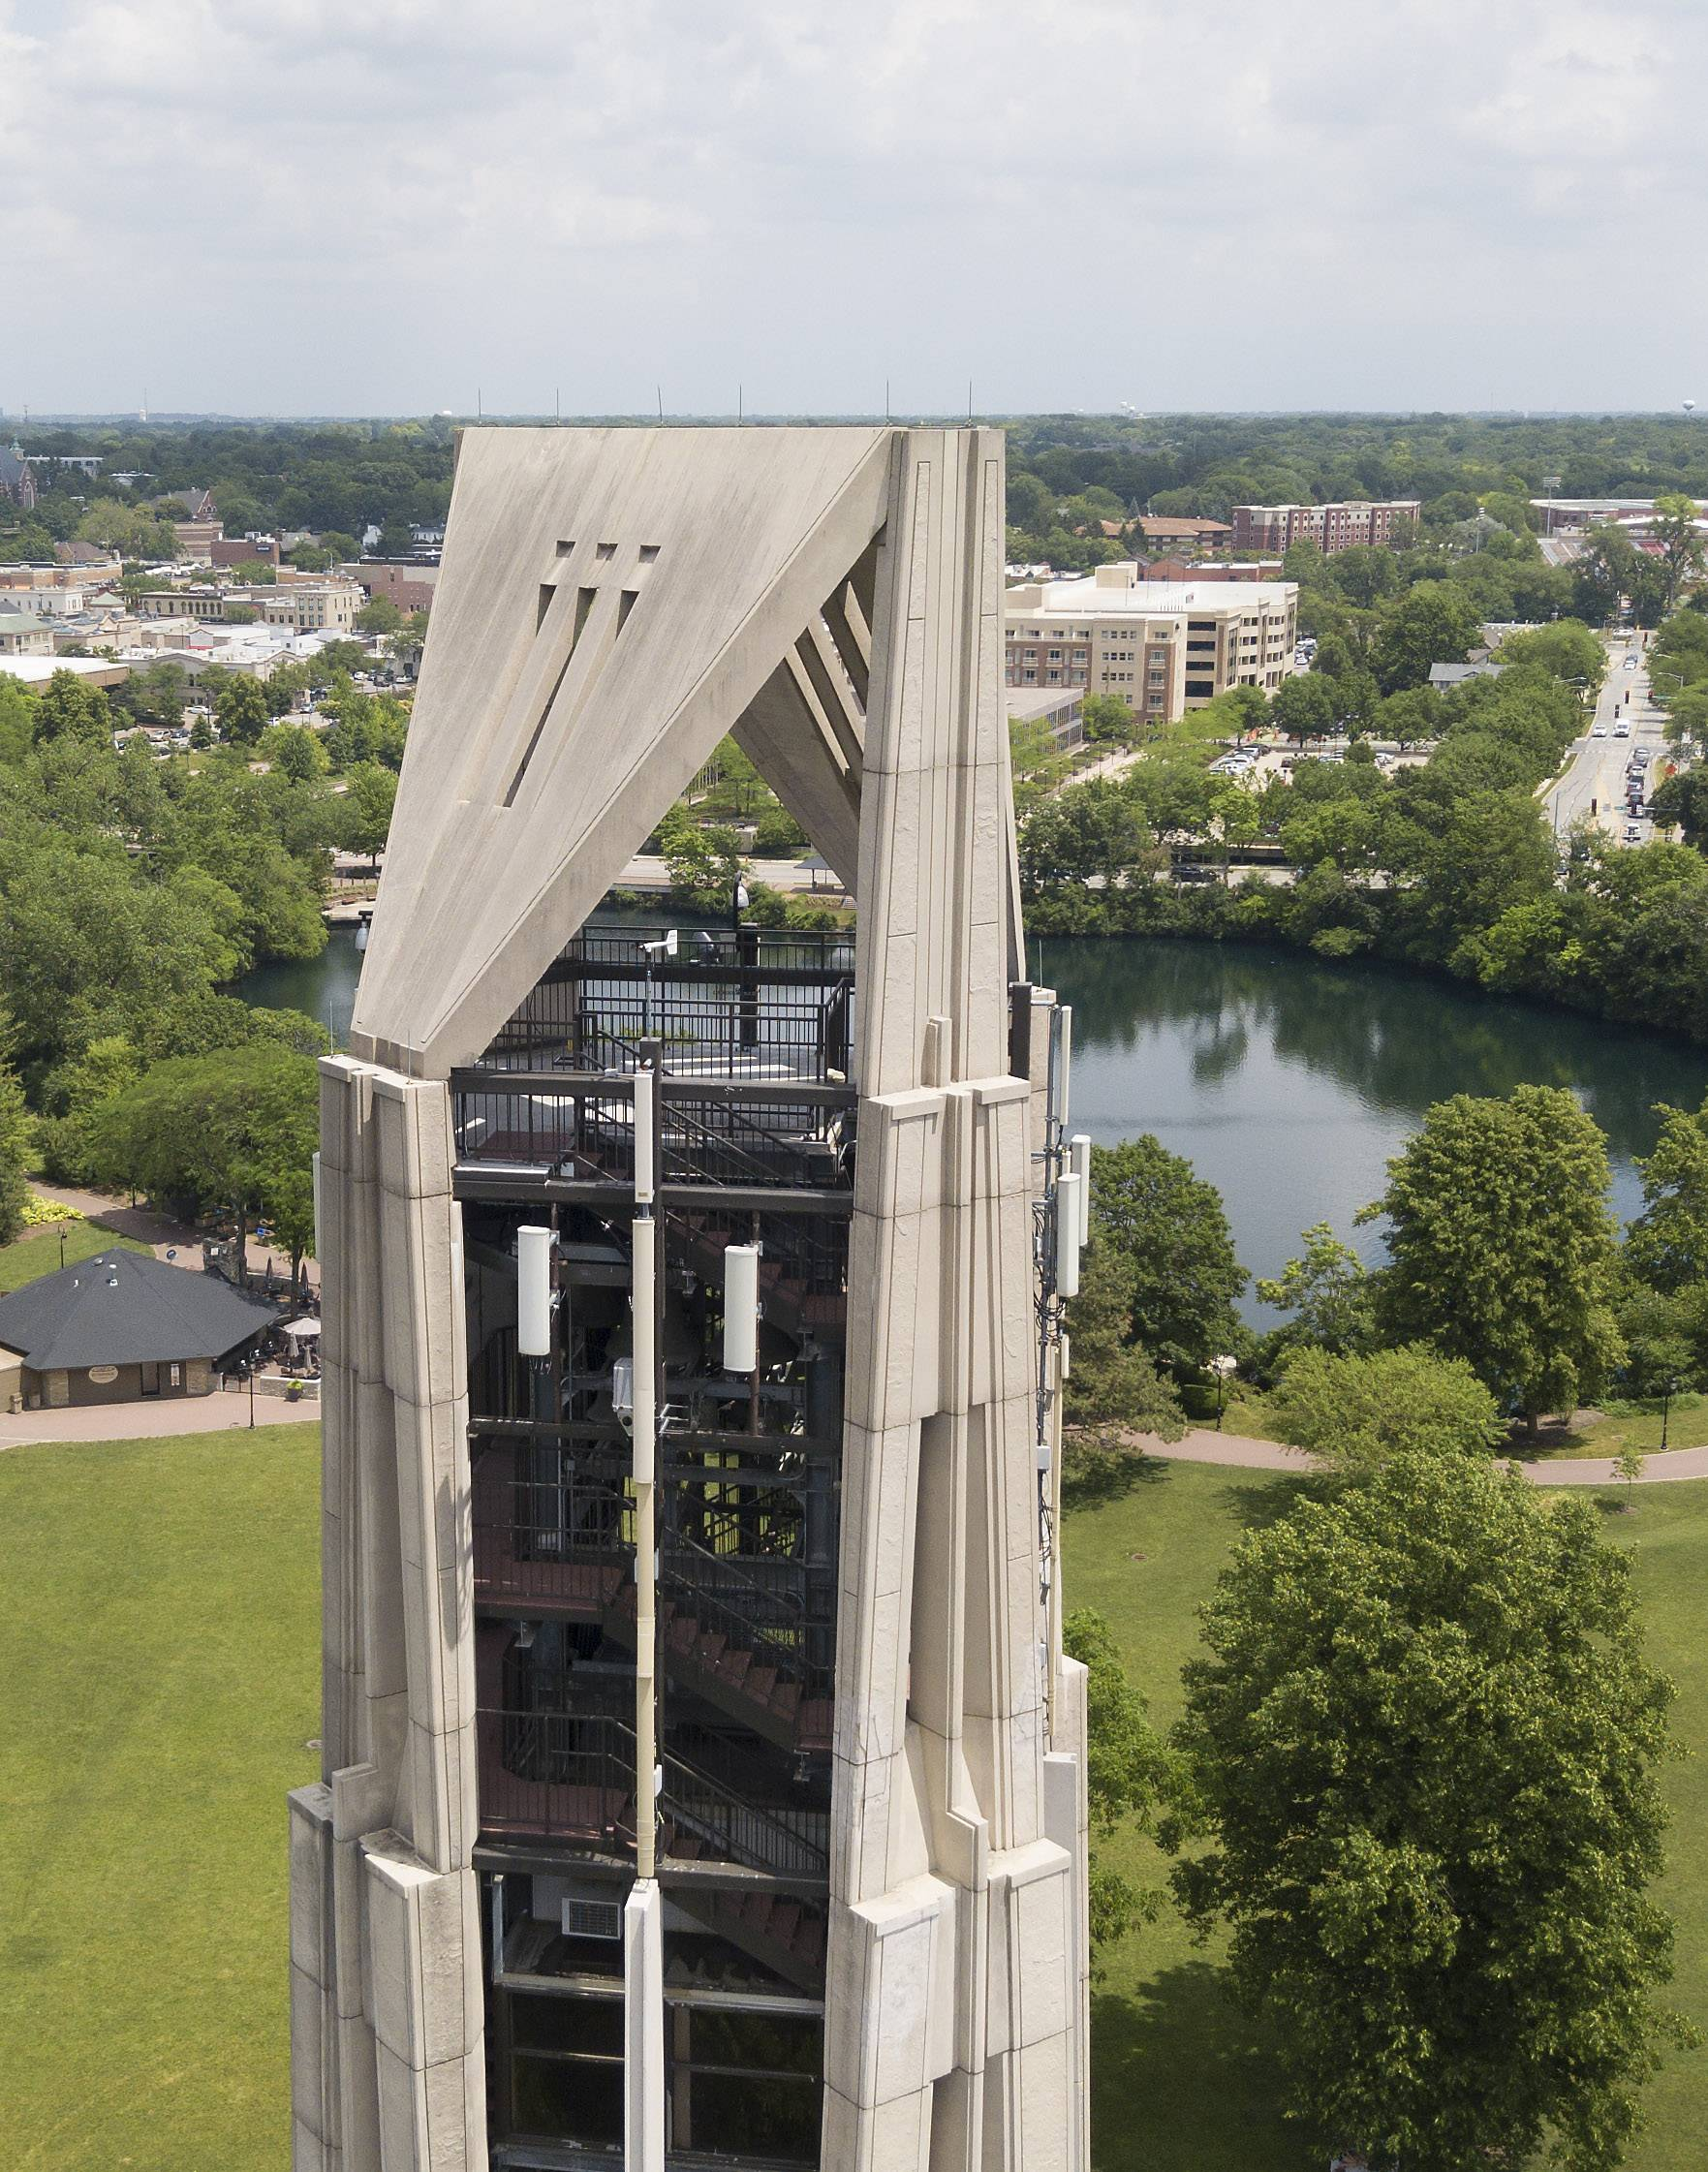 Task force to chime in on Naperville bell tower's future